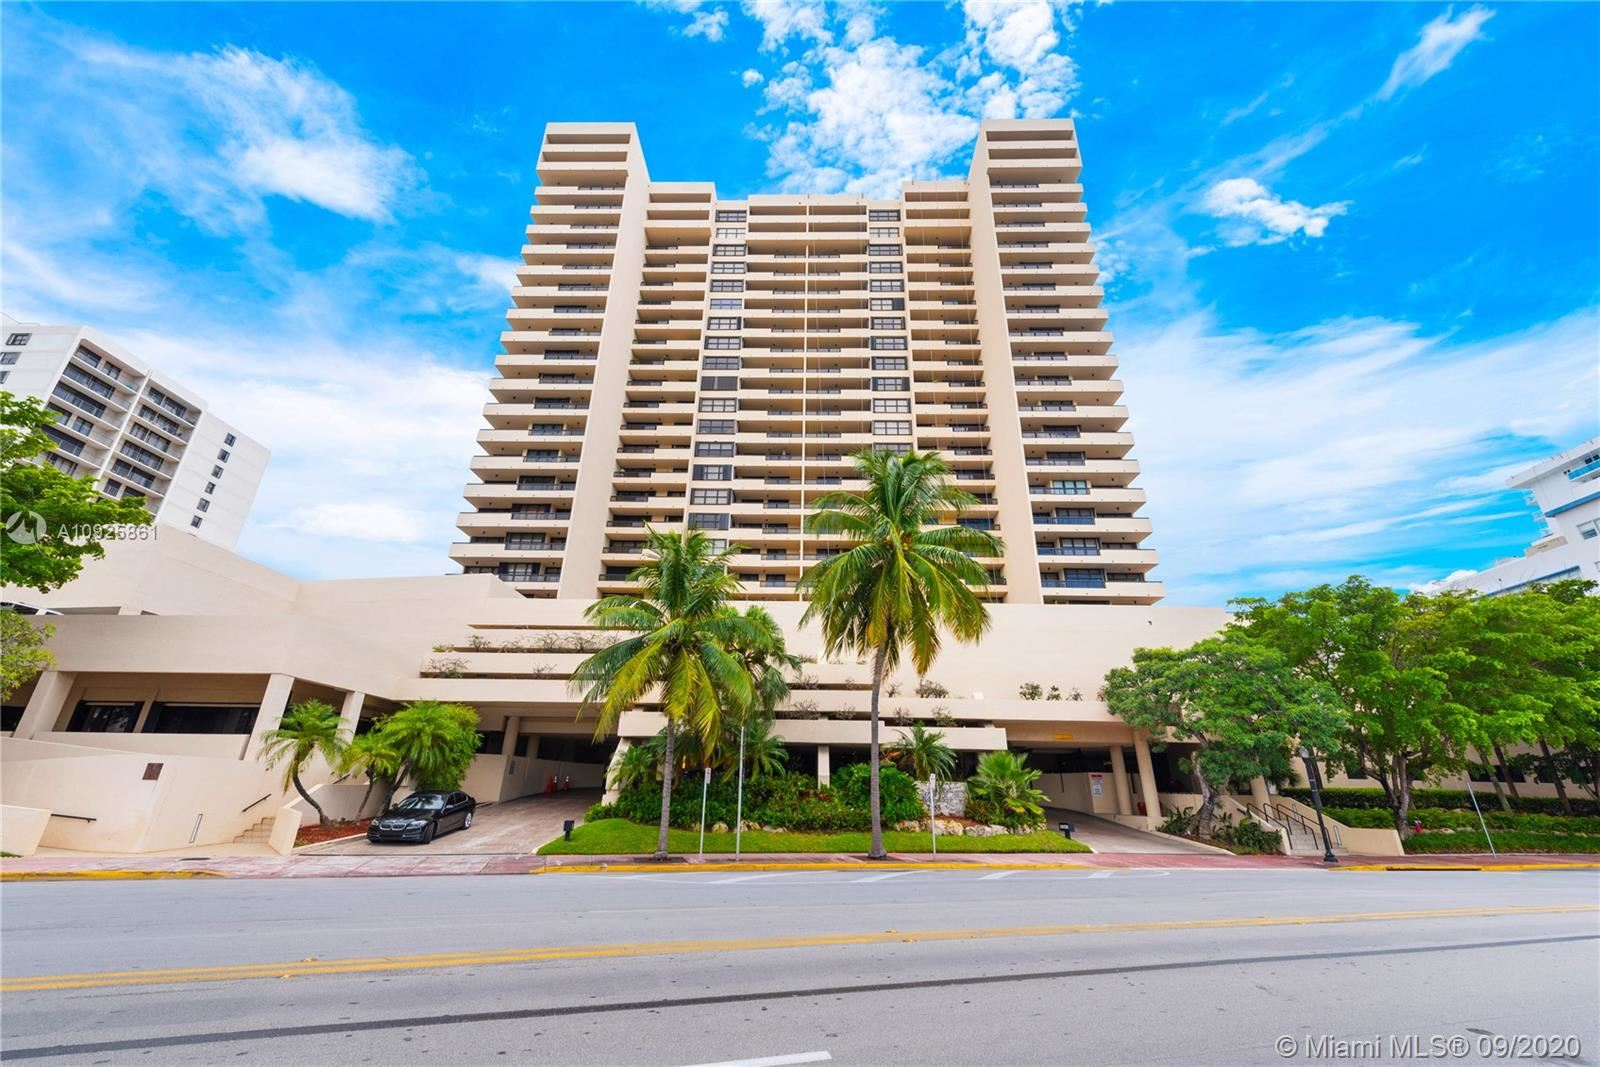 2555 Collins Ave #1101, Miami Beach, FL 33140 - #: A10925861